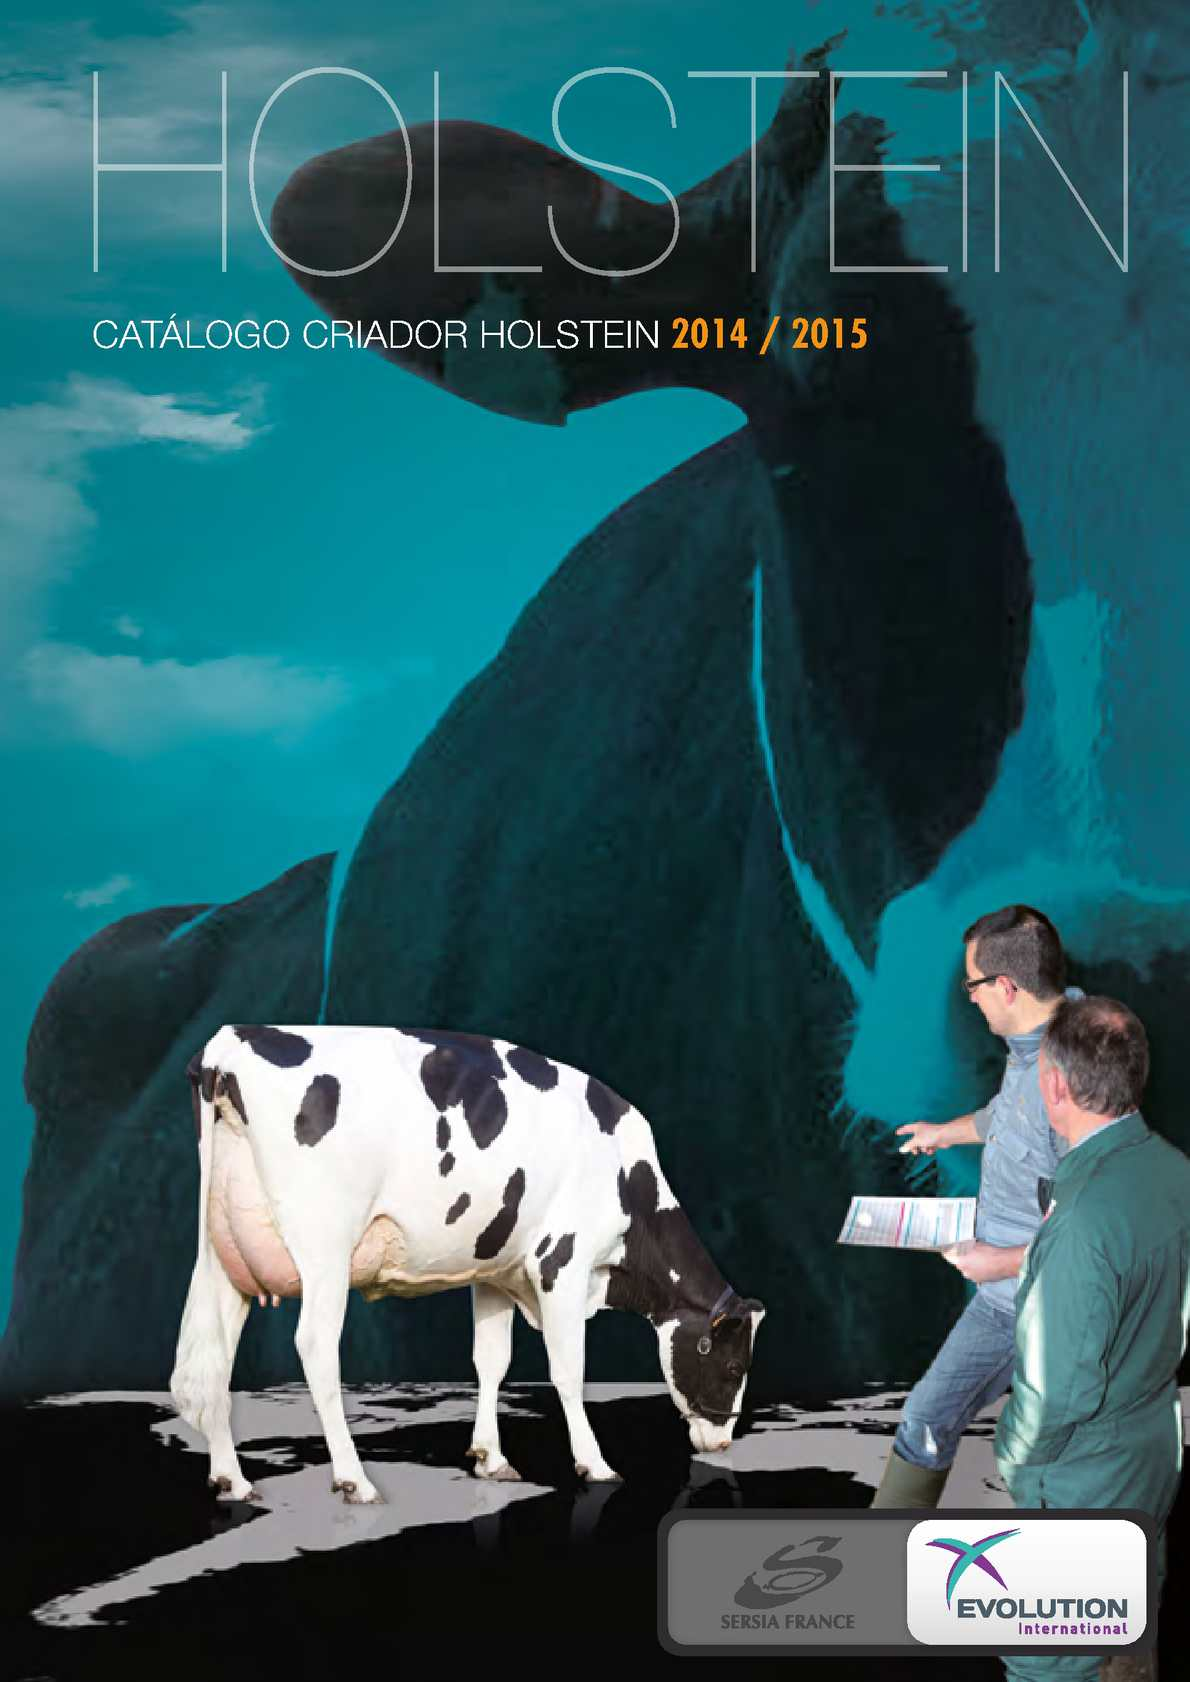 CATALOGUE HOLSTEIN ISU EVOLUTION INTERNATIONAL 2015 PORT